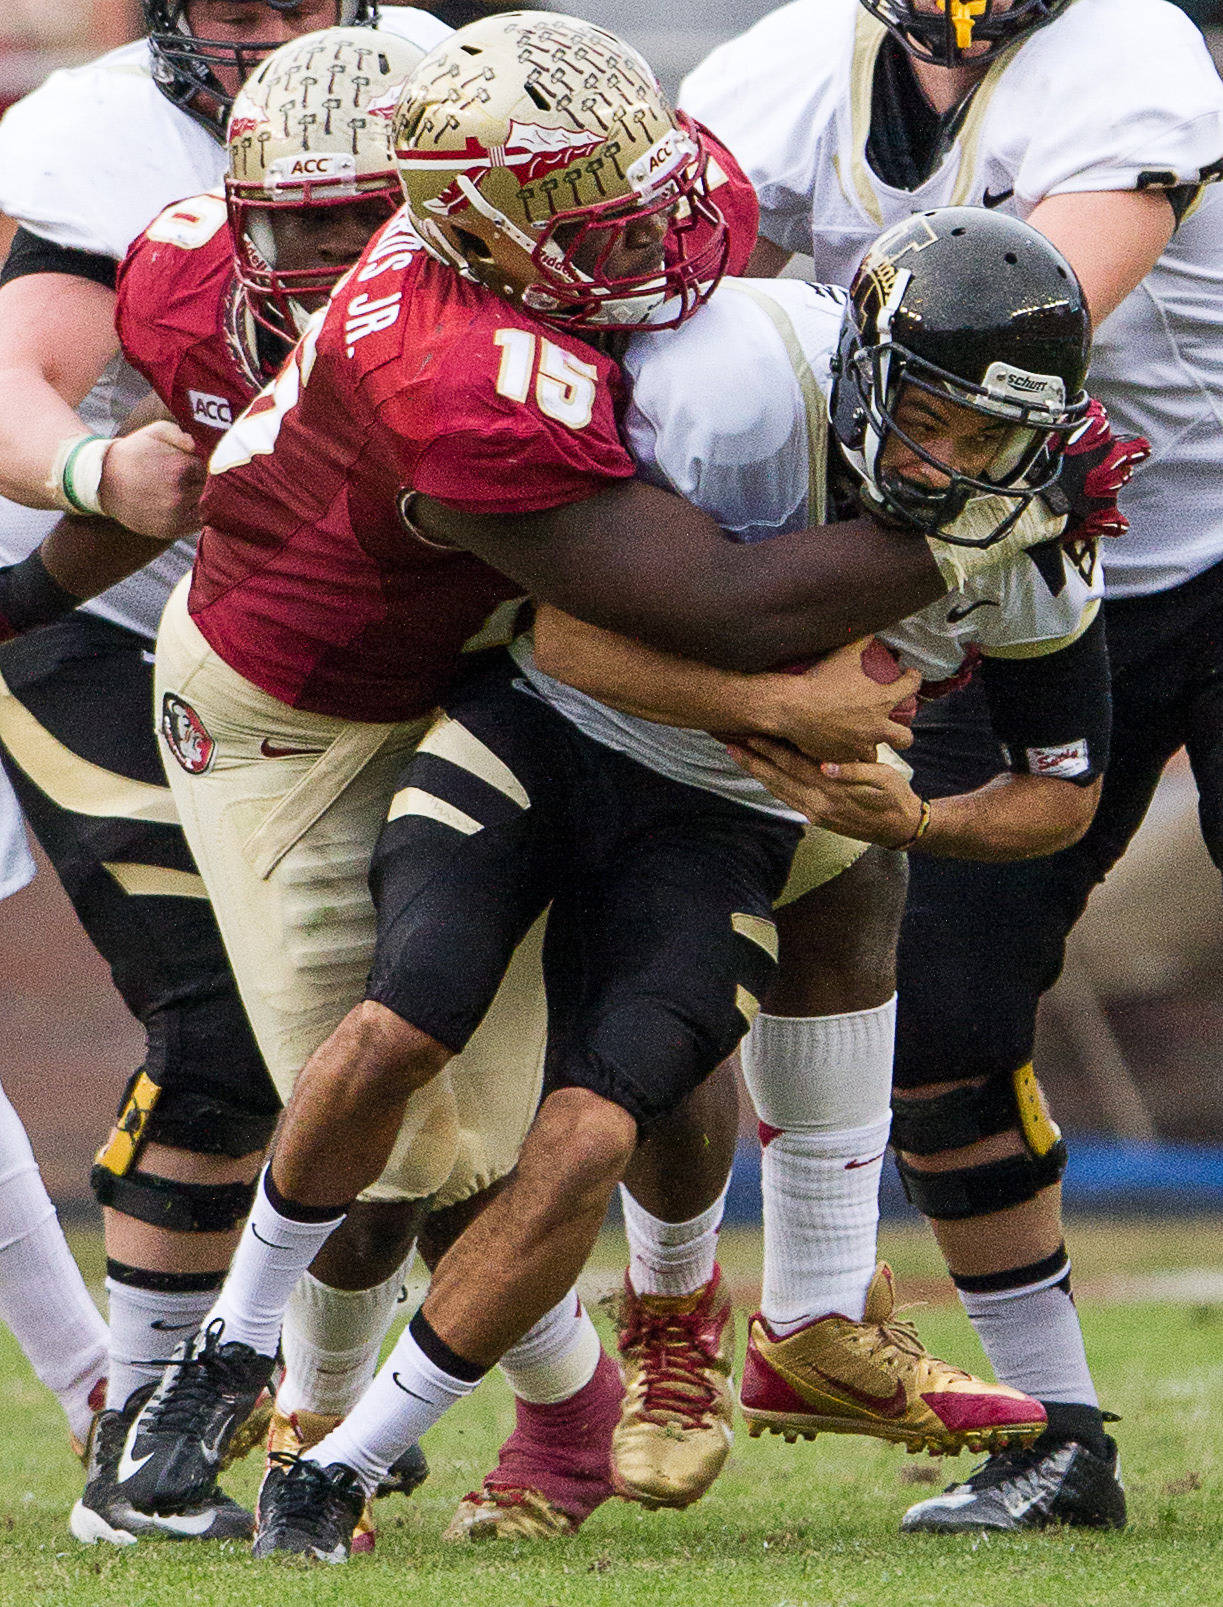 Mario Edwards, Jr. (15) sacks Idaho's quarterback during FSU Football's 80-14 victory over Idaho in Tallahassee, Fla on Saturday, November 23, 2013. Photos by Mike Schwarz.